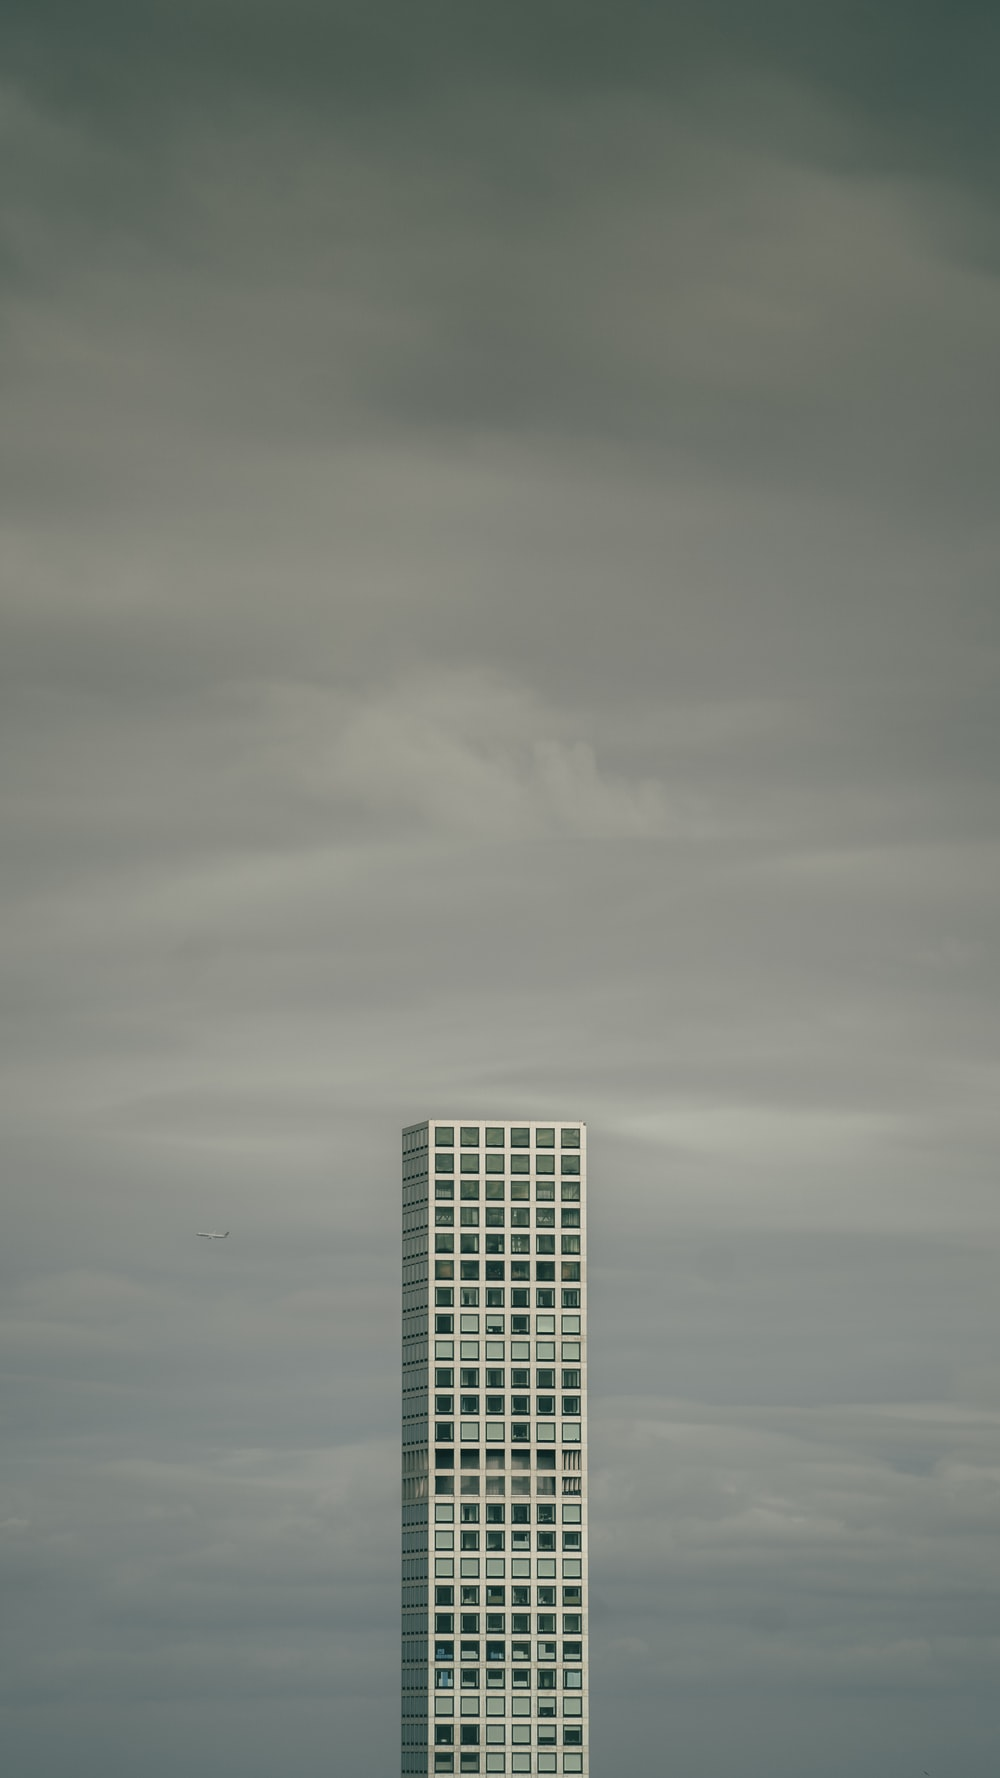 gray high-rise building under cloudy sky during daytime